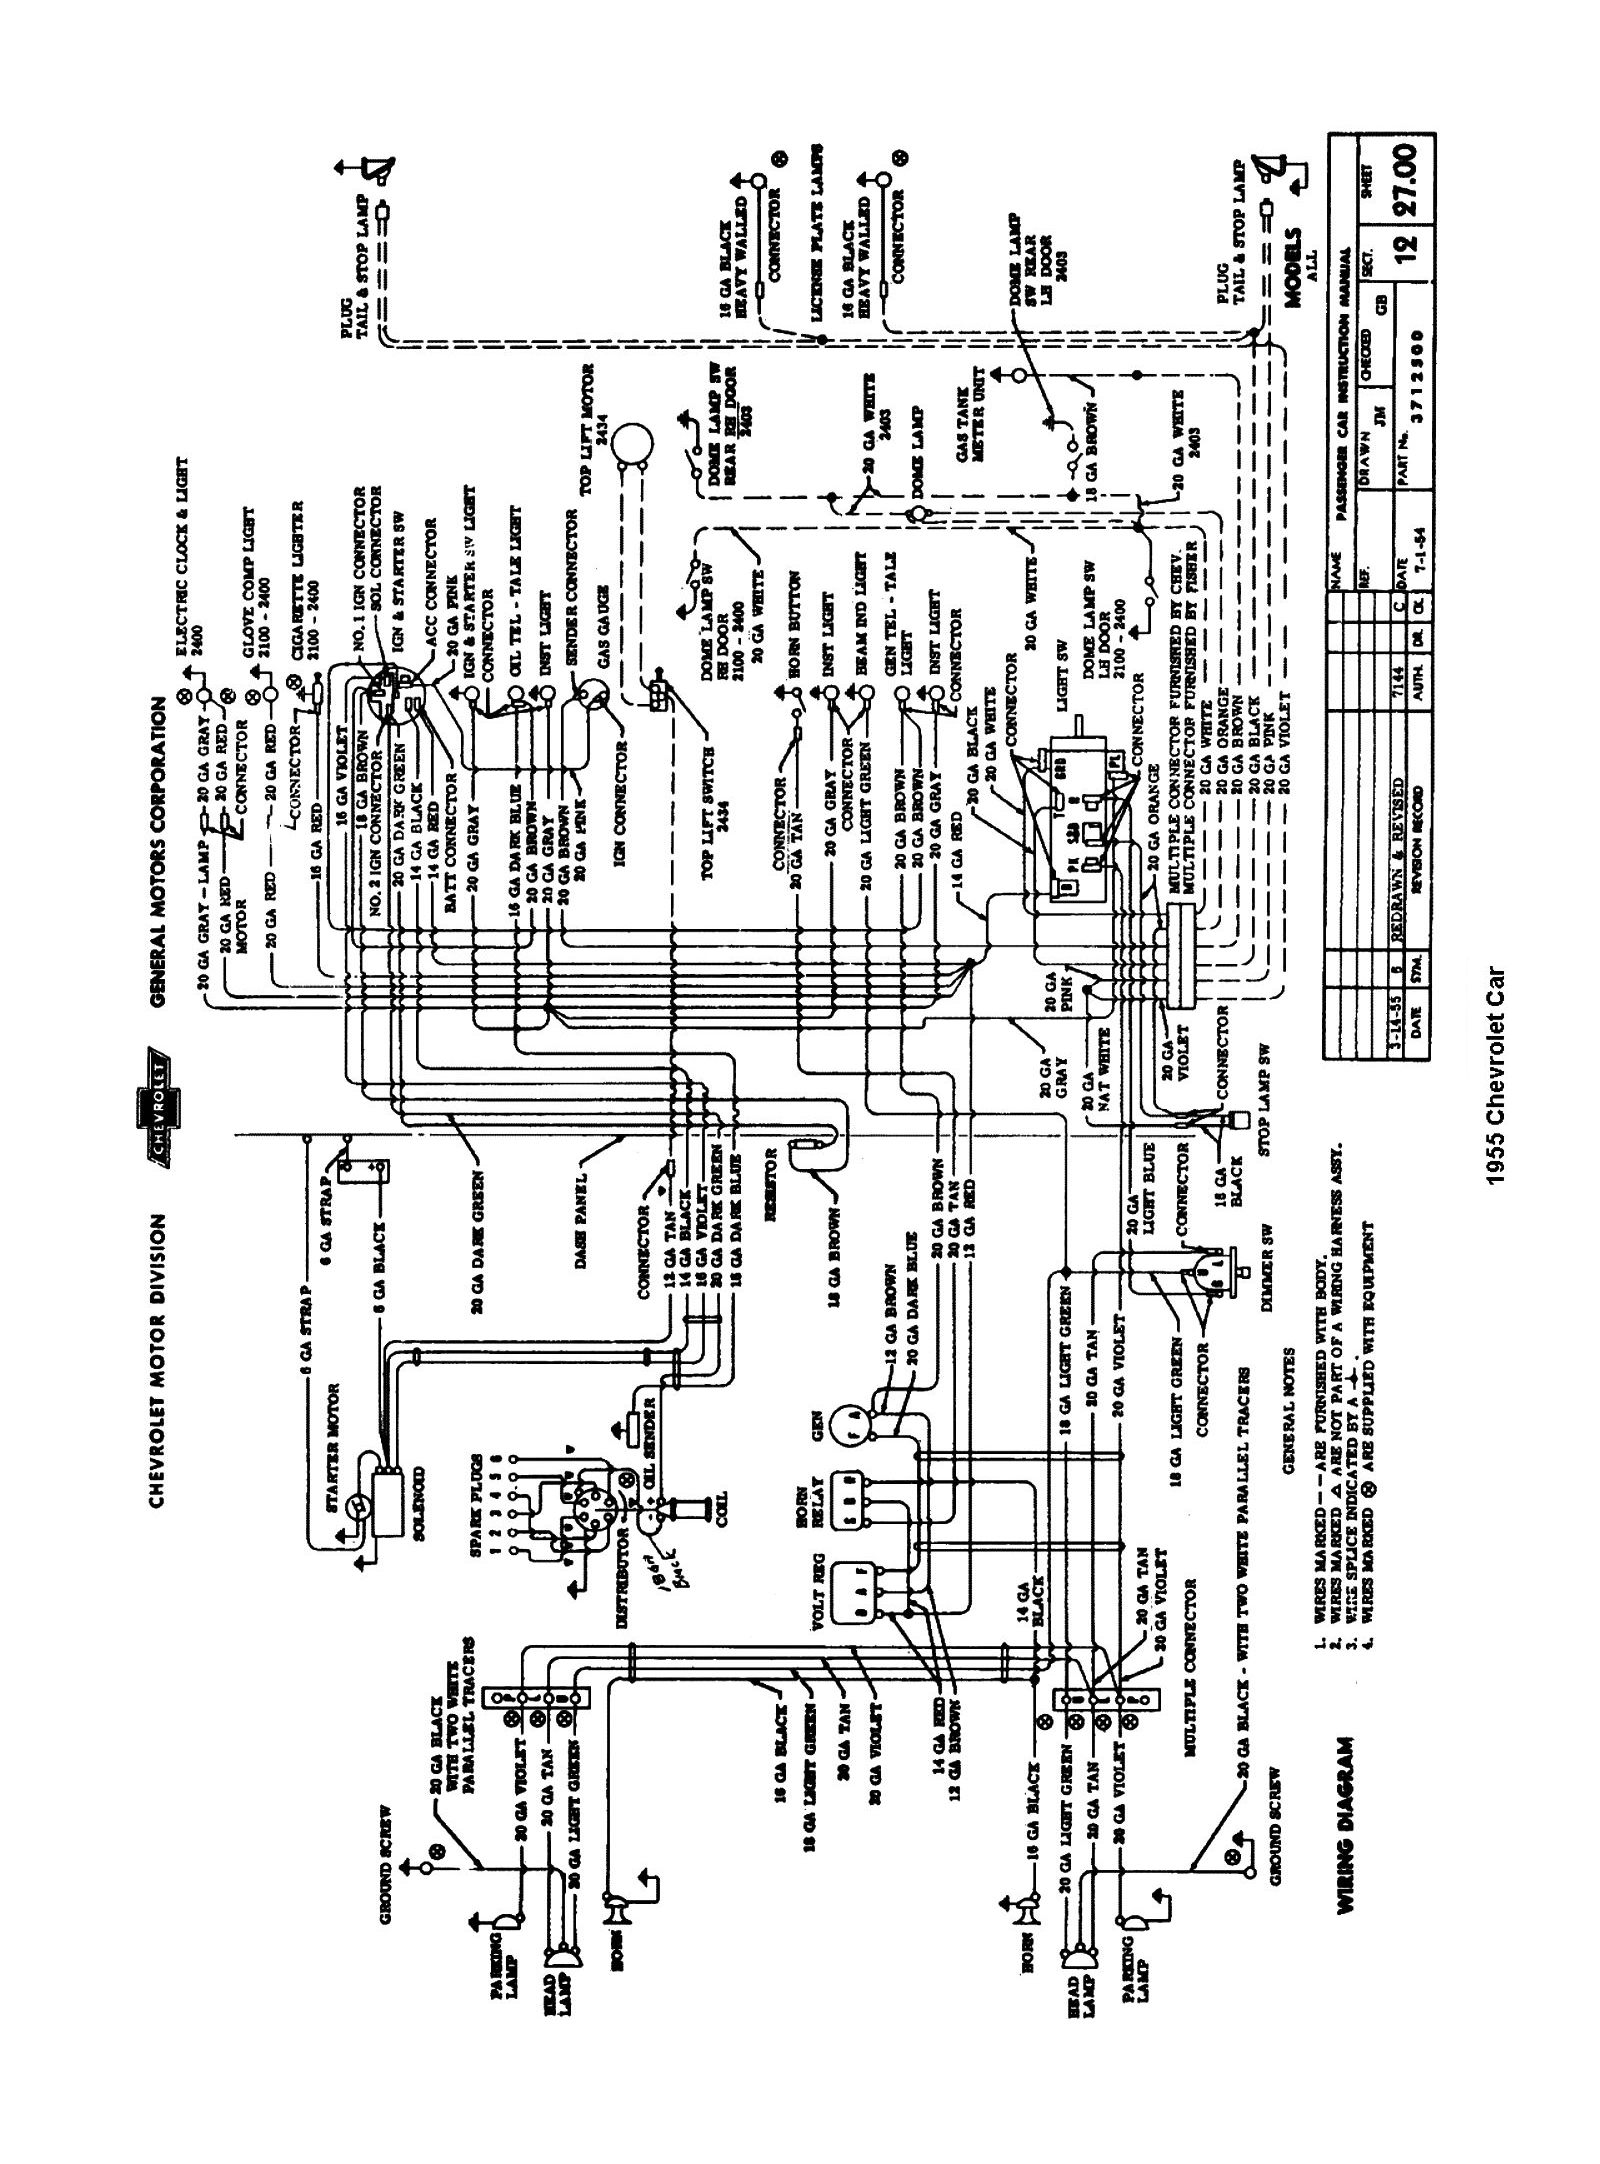 56 chevy pickup wiring diagram for catalogue of schemas  1956 chevy ignition switch diagram